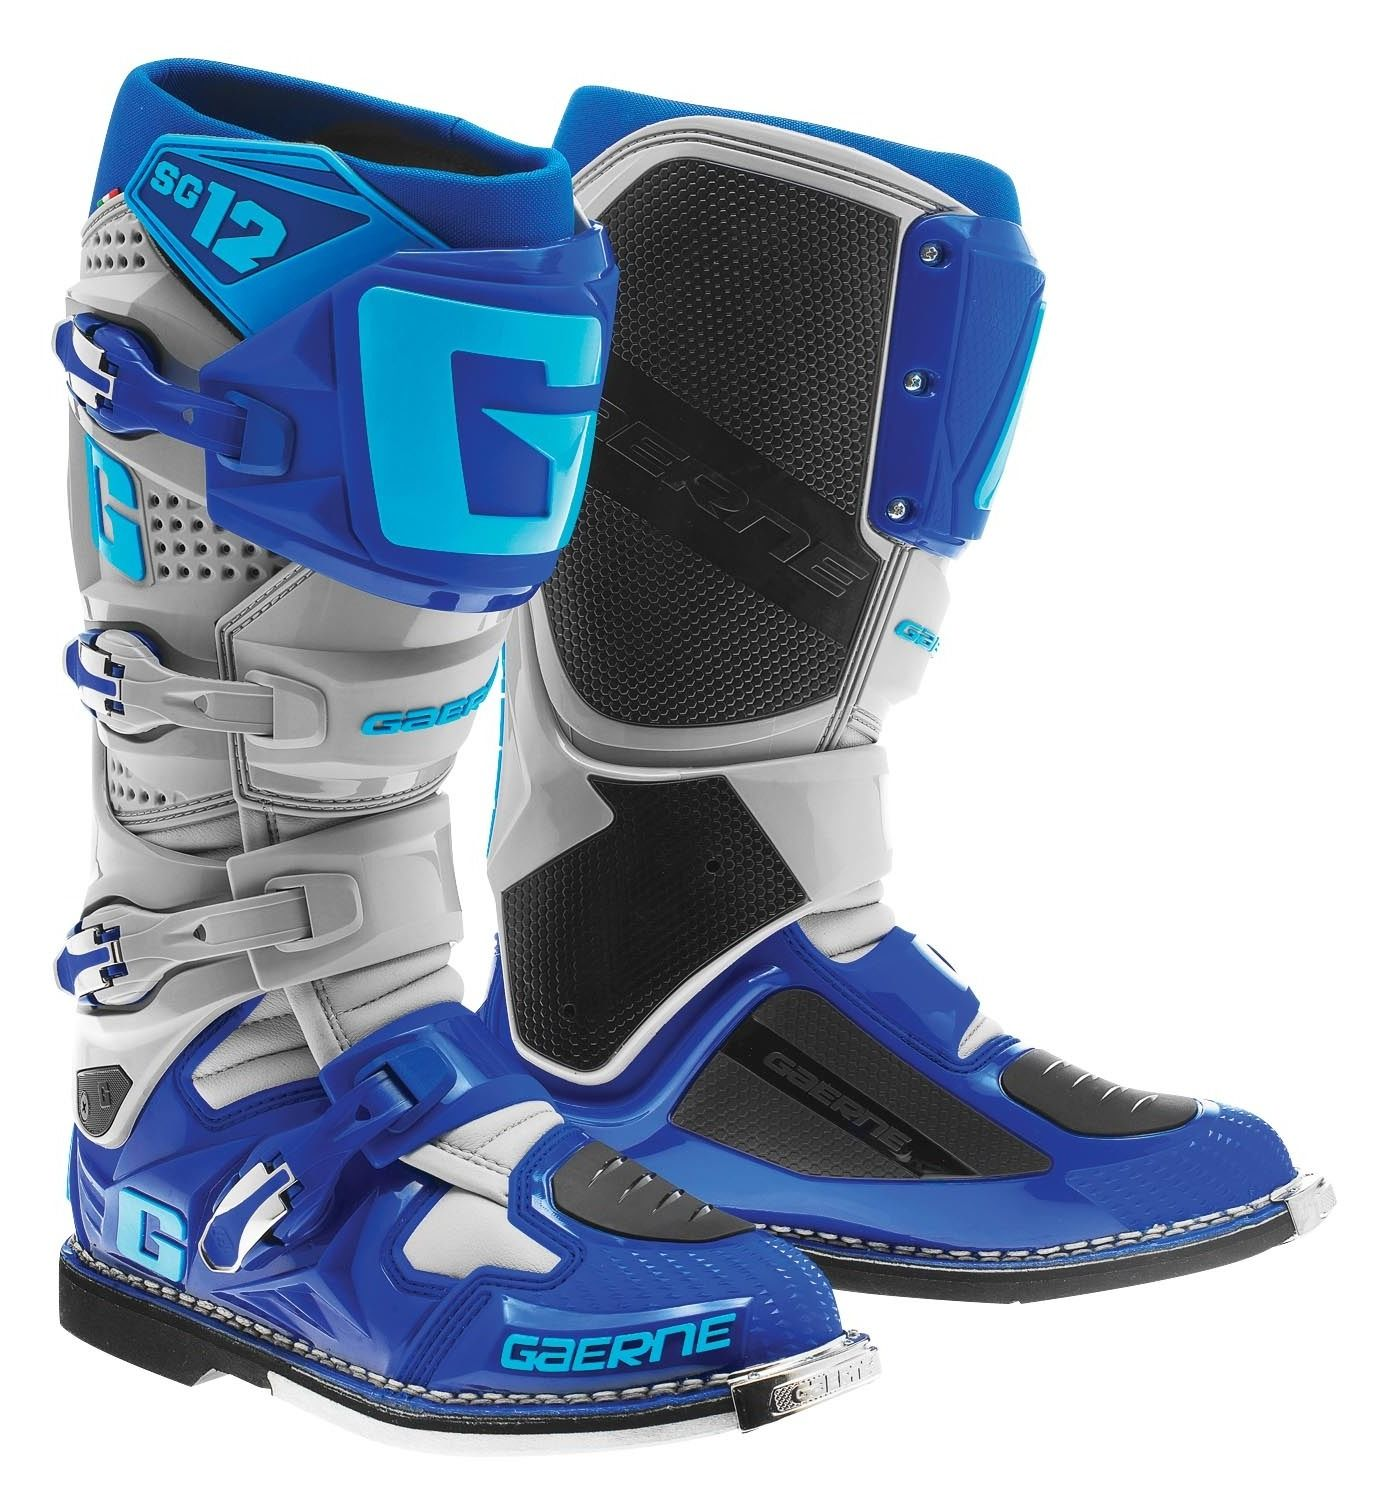 The SG is a Premium boot, the kind of boot that real racers wear Dual composite rubber soles, lightweight alloy, replaceable buckle system, exclusive GAERNE Grip Guard, floating Razorback with a built in ankle alignment system, supercross shank as well as a heel bumper and memory cell PU inner foam liner that completes the construction for an unforgettable fitReviews: 2.